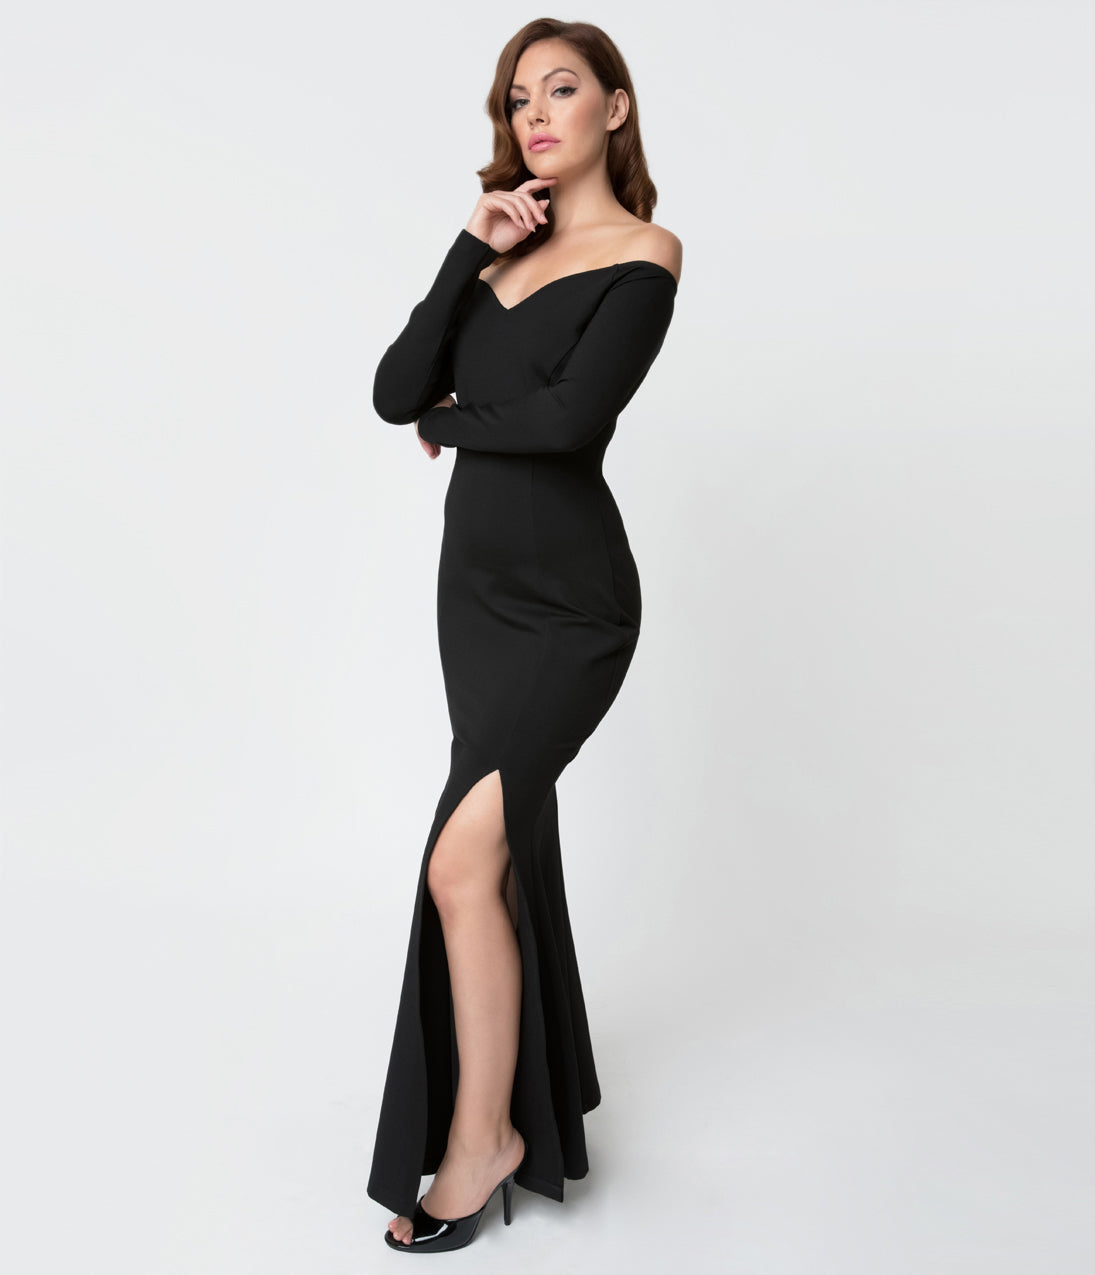 What Did Women Wear in the 1950s? 1950s Fashion Guide Unique Vintage Black Stretch Off Shoulder Long Sleeve Vampira Gown $118.00 AT vintagedancer.com